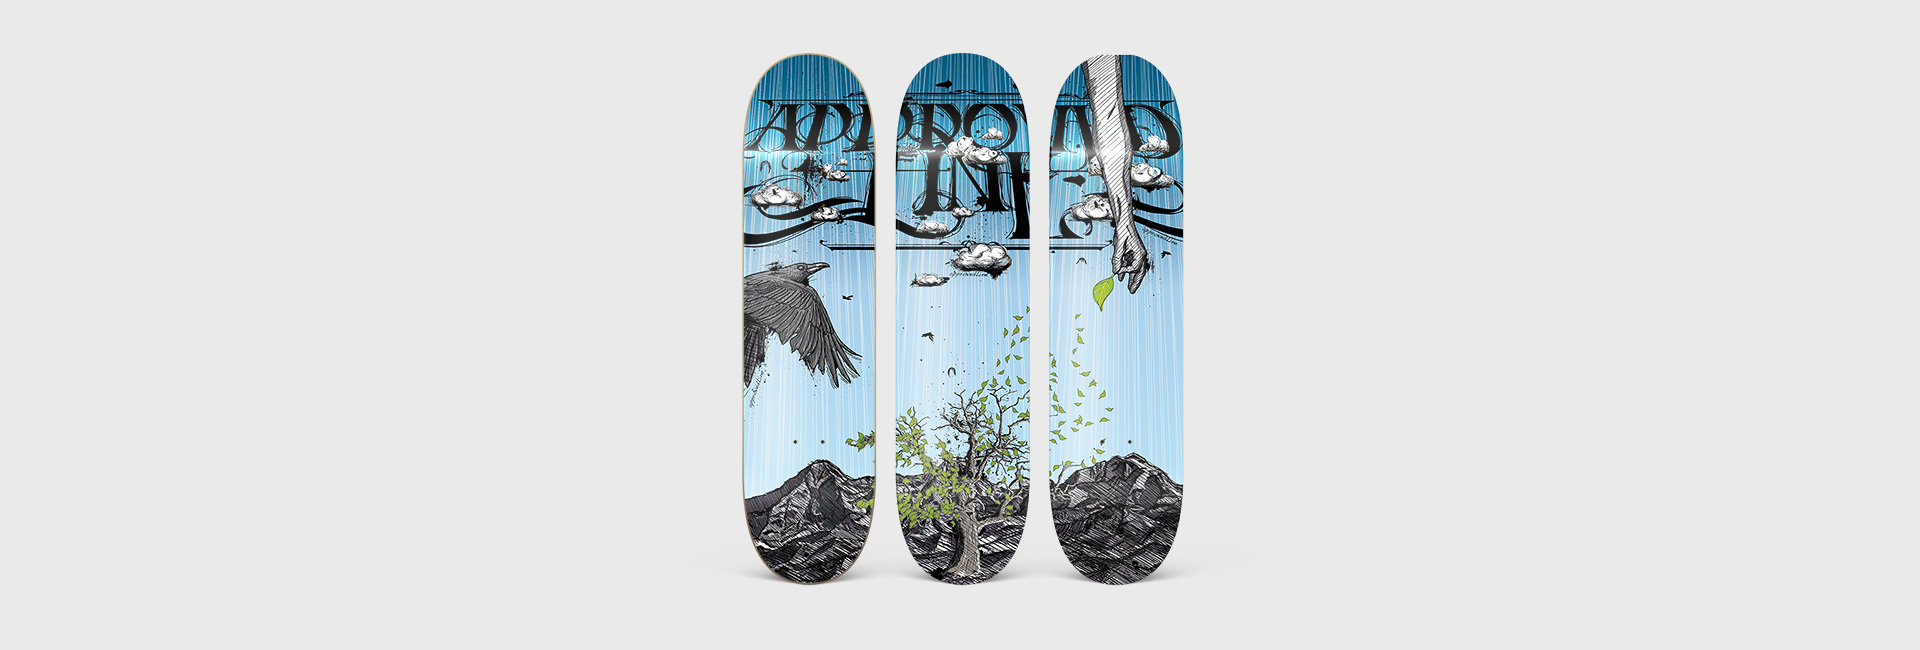 Skatedecks